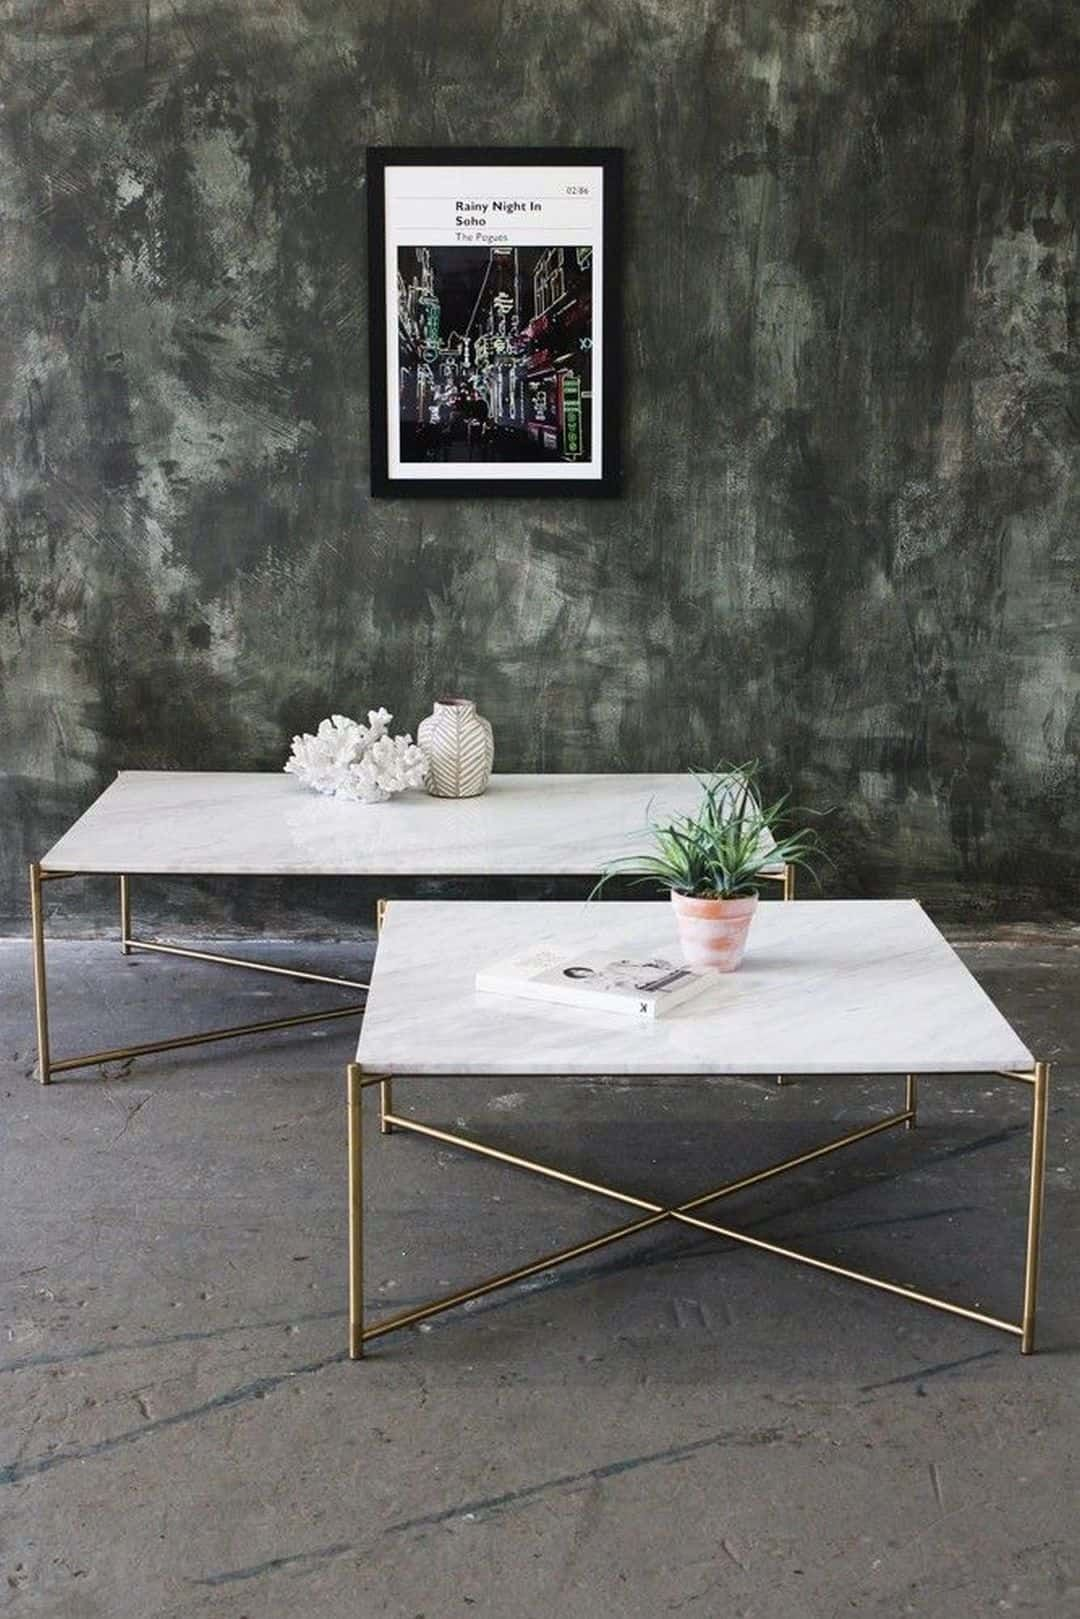 Coffee Table Styling As Modern Urban Decoration Futurist Architecture In 2021 Coffee Table Marble Tables Living Room Unique Coffee Table [ 1619 x 1080 Pixel ]